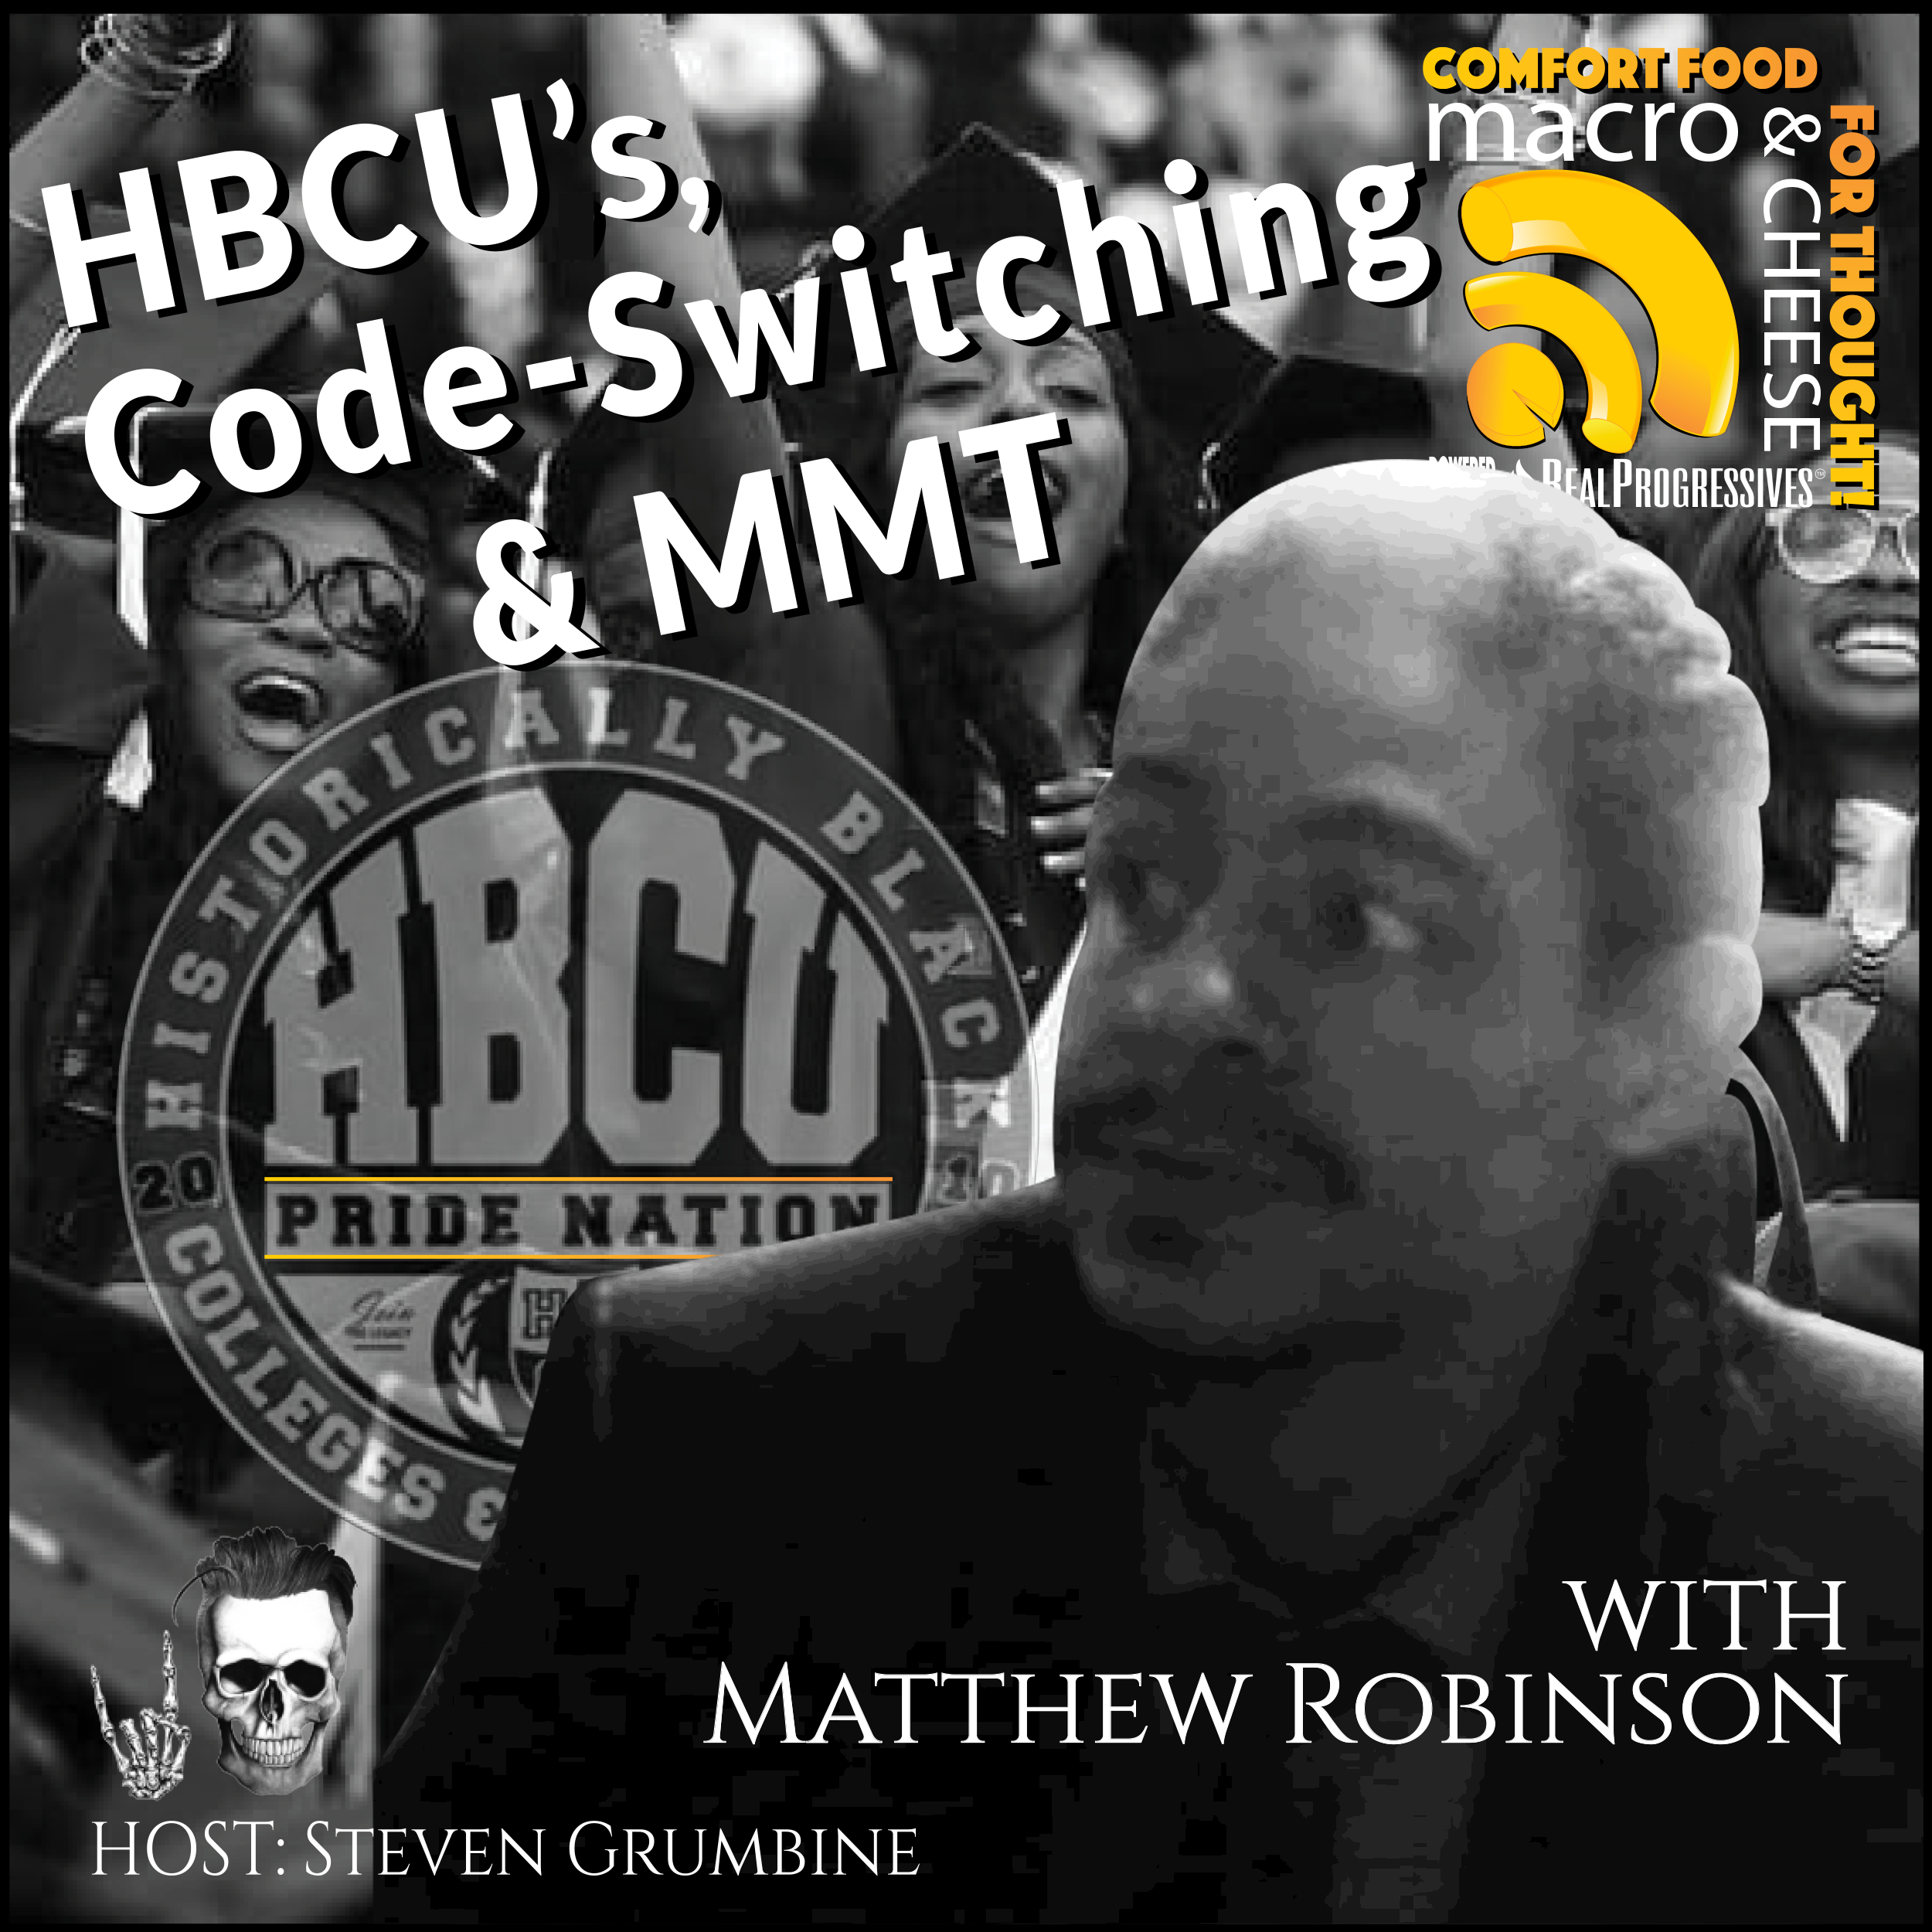 HBCU's, Codeswitching and MMT with Matthew Robinson